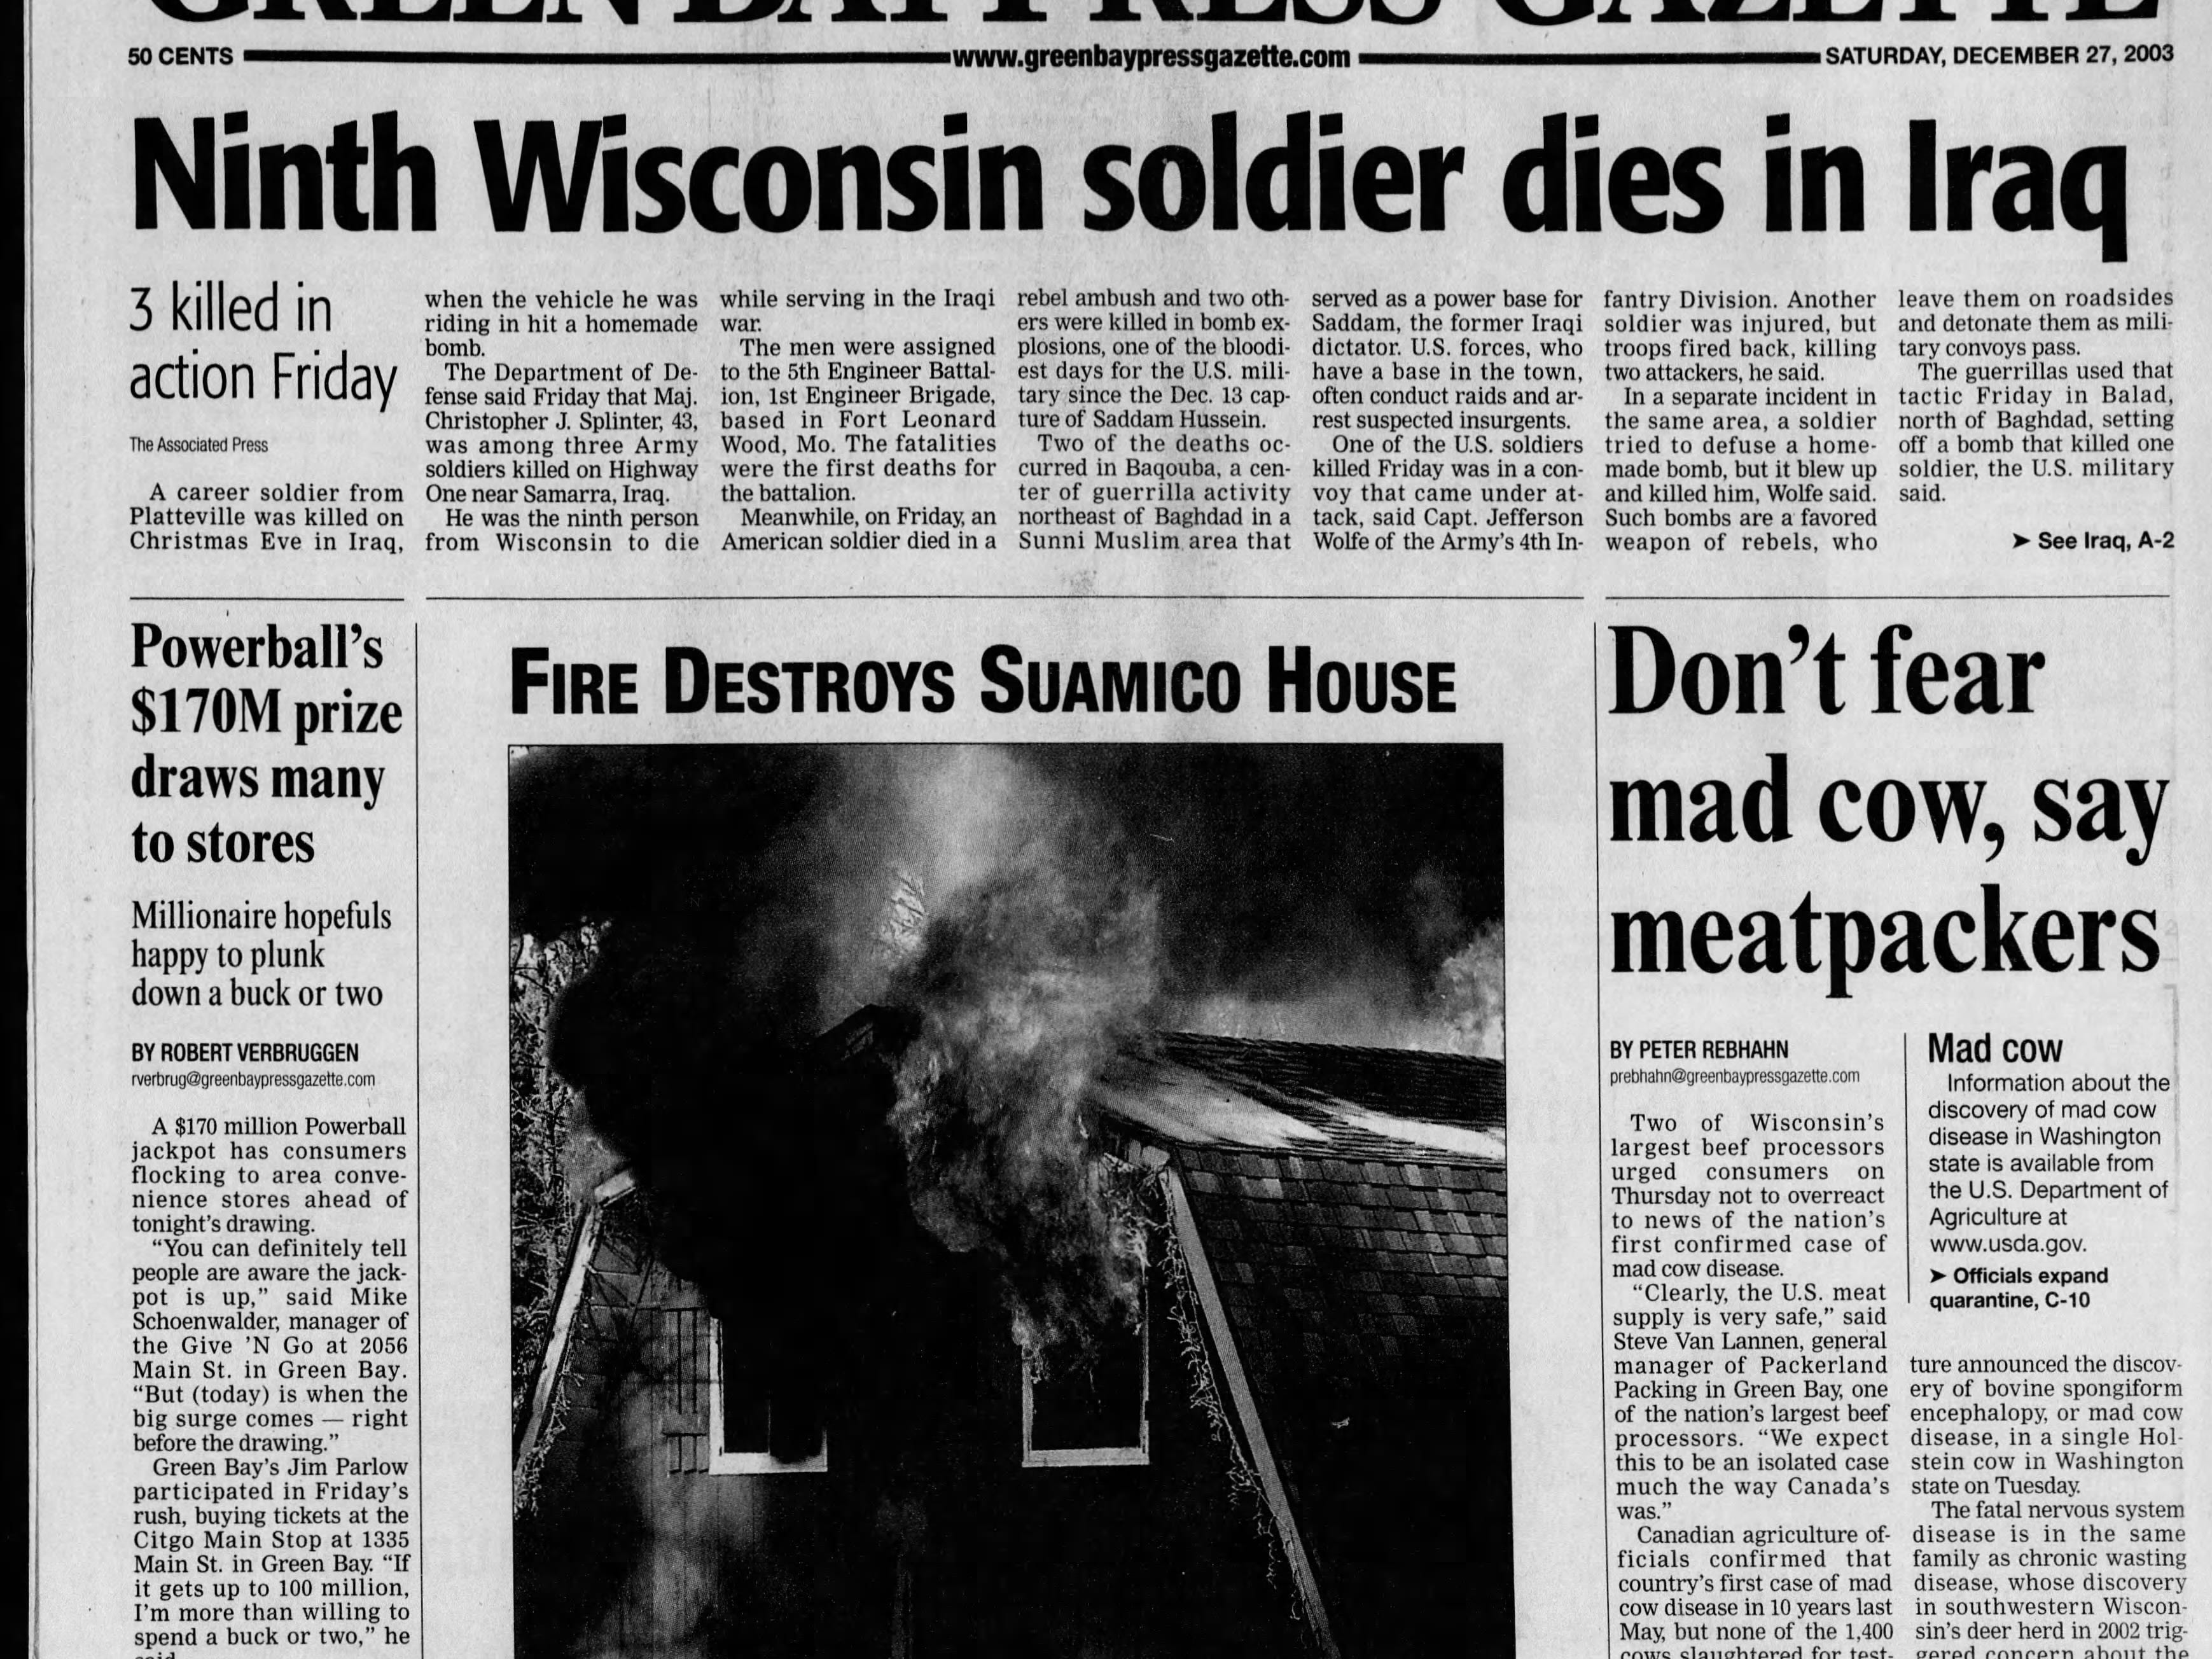 Today in History: Dec. 27, 2003